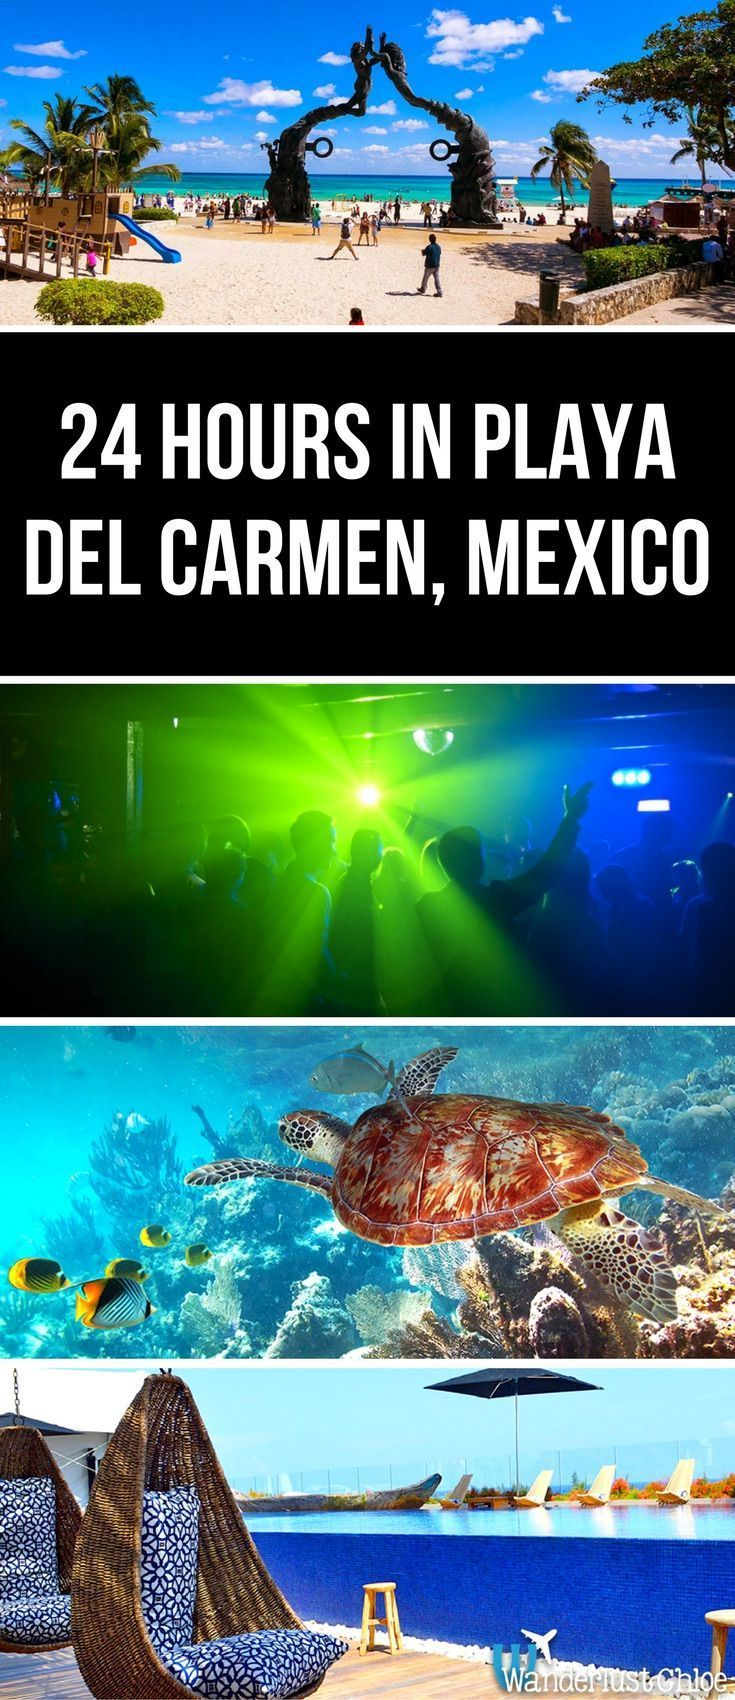 Mexico Vacations 2017 Explore Cheap Vacation Packages: 78+ Images About Visit Mexico On Pinterest